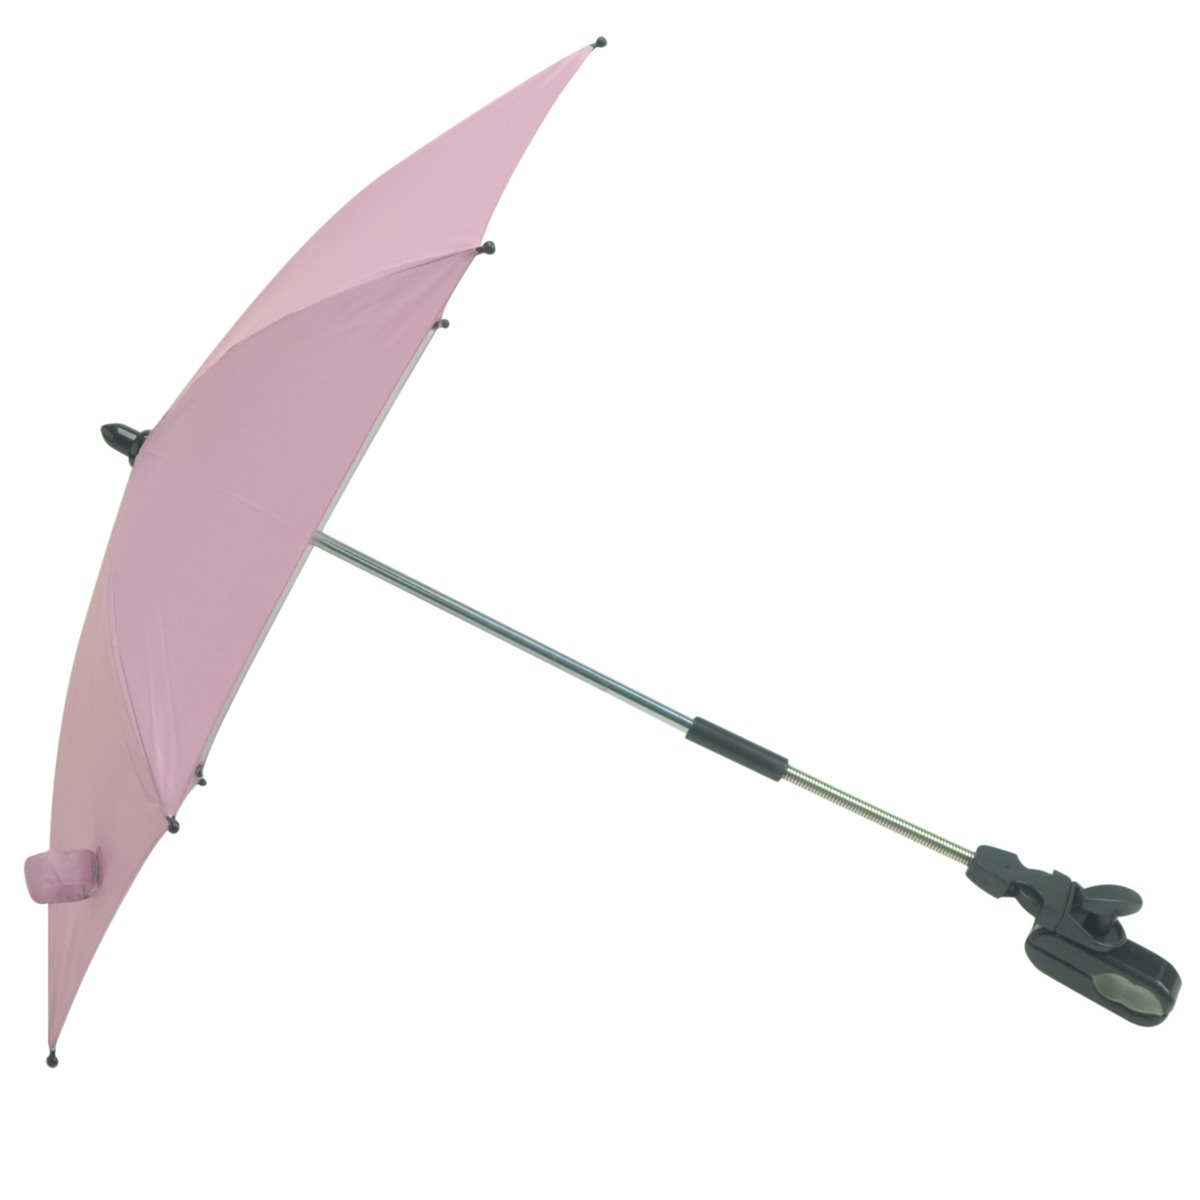 Baby-Parasol-Universal-Sun-Umbrella-Shade-Maker-Canopy-For-Pushchair-Pram-Buggy thumbnail 49